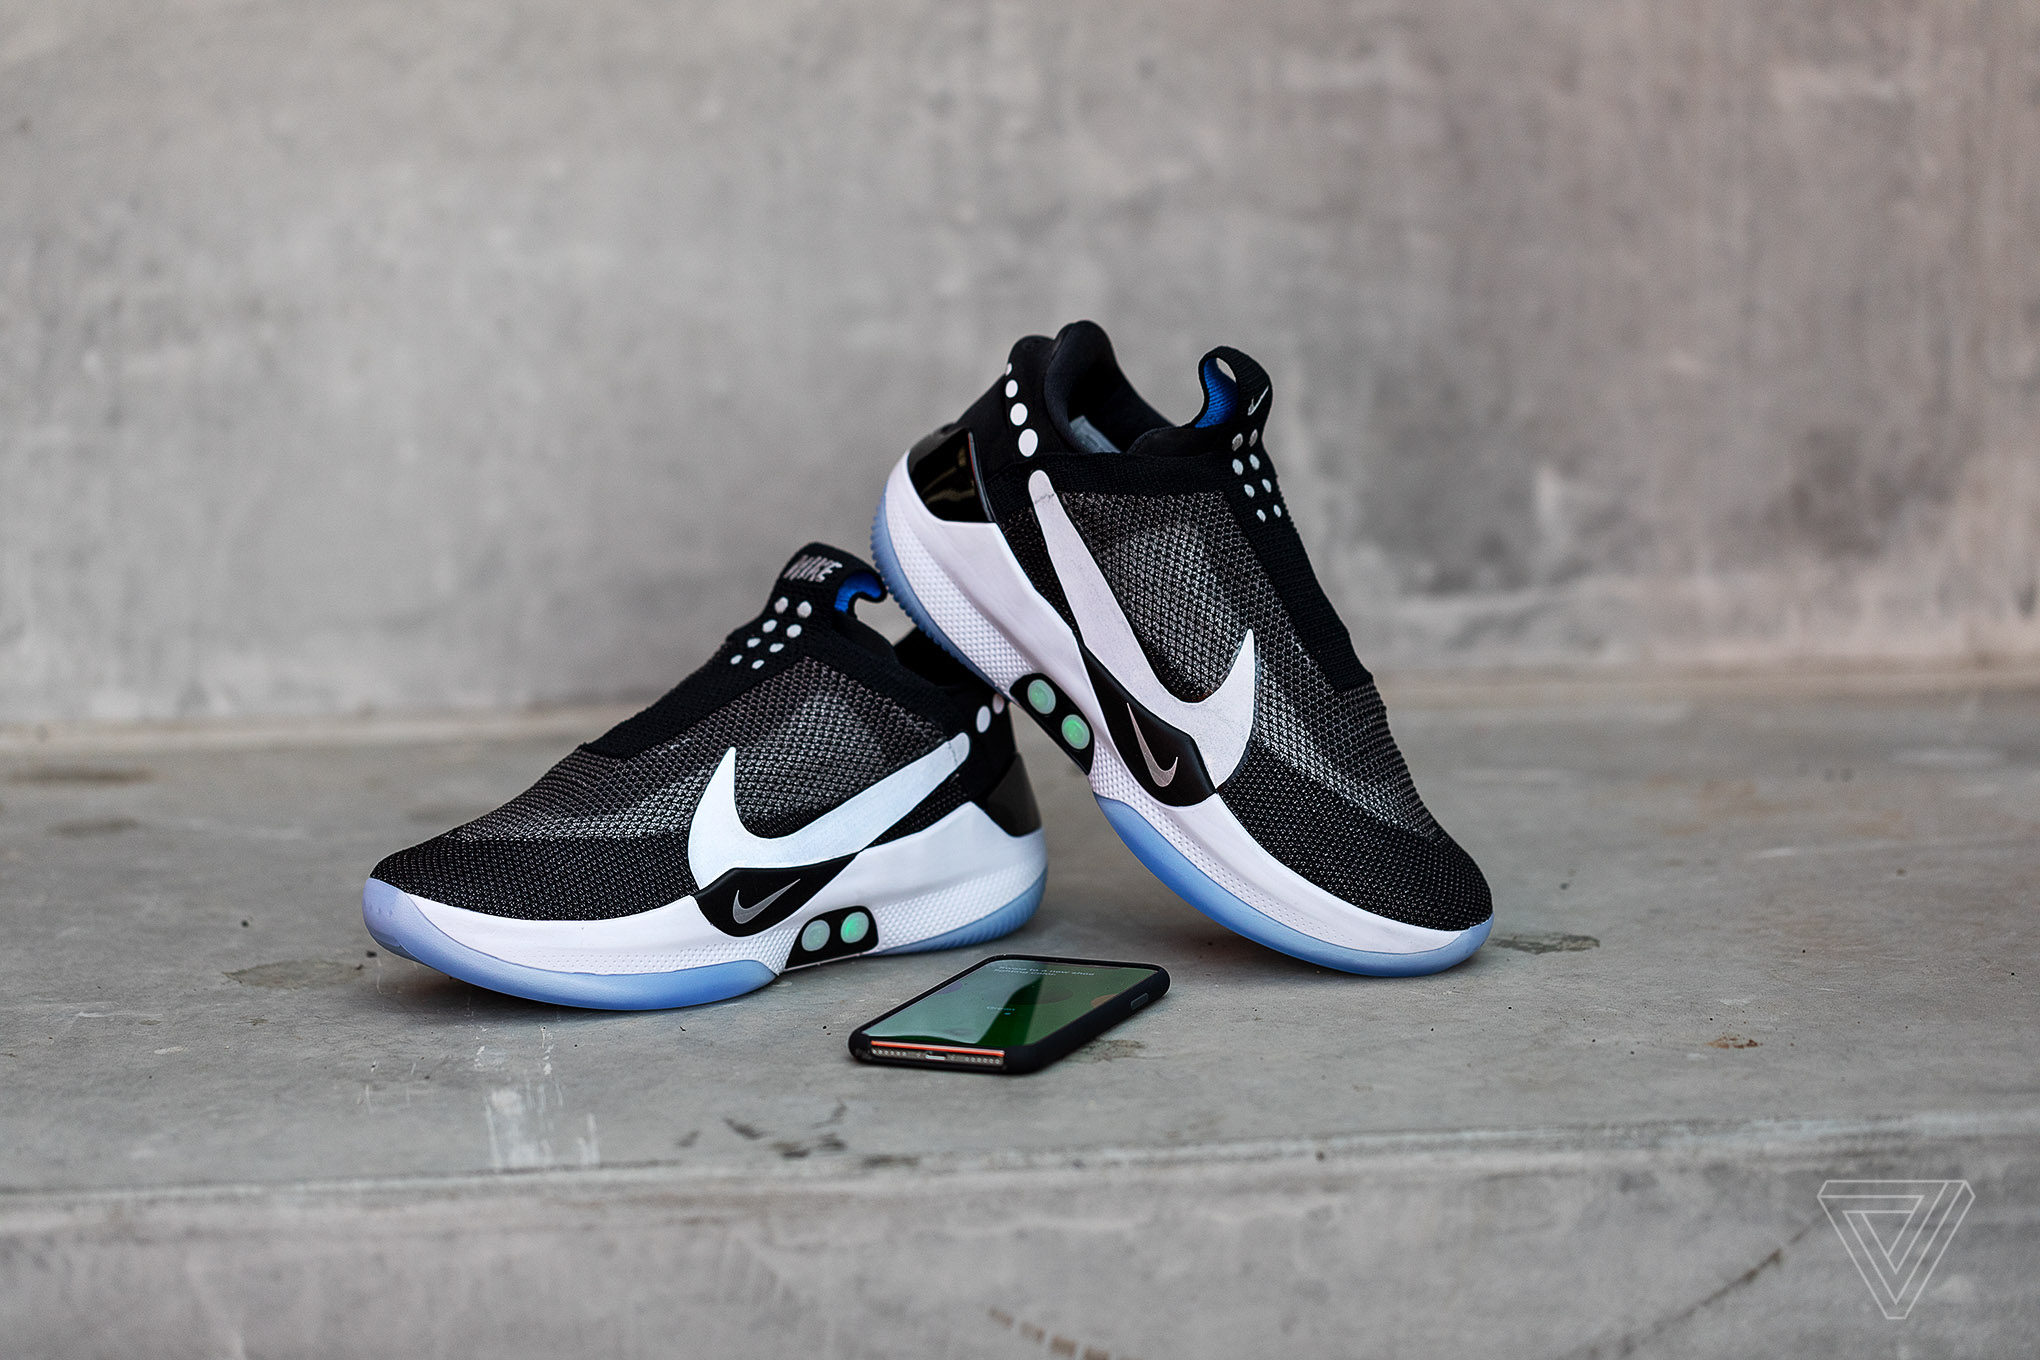 9a1a7c9b6d2 Nike s Adapt BB self-lacing sneakers let you tie your shoes from an ...